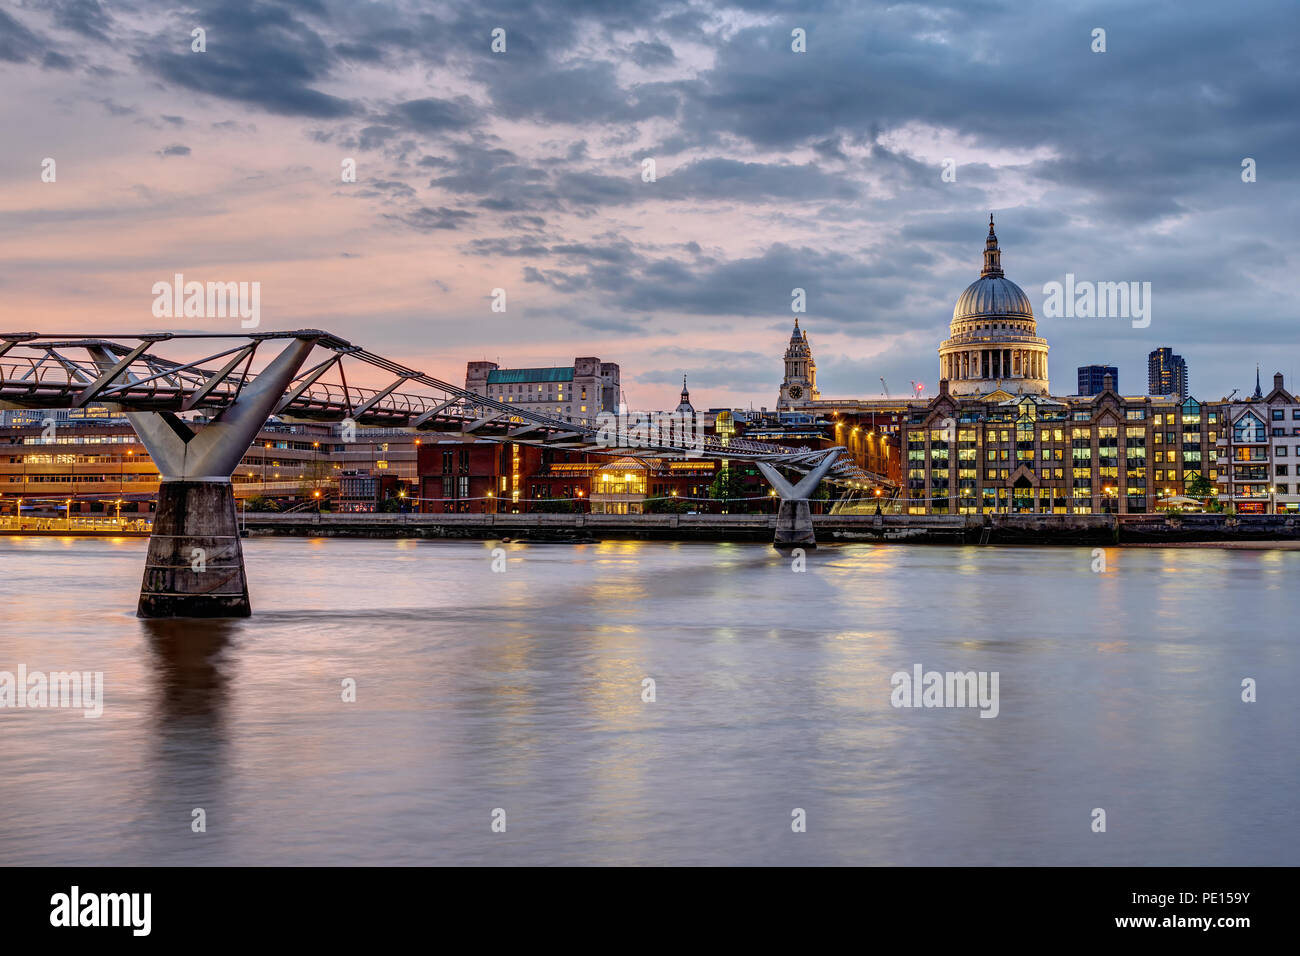 Die Millennium Bridge und St. Paul's Cathedral in London, UK, bei Sonnenuntergang Stockbild